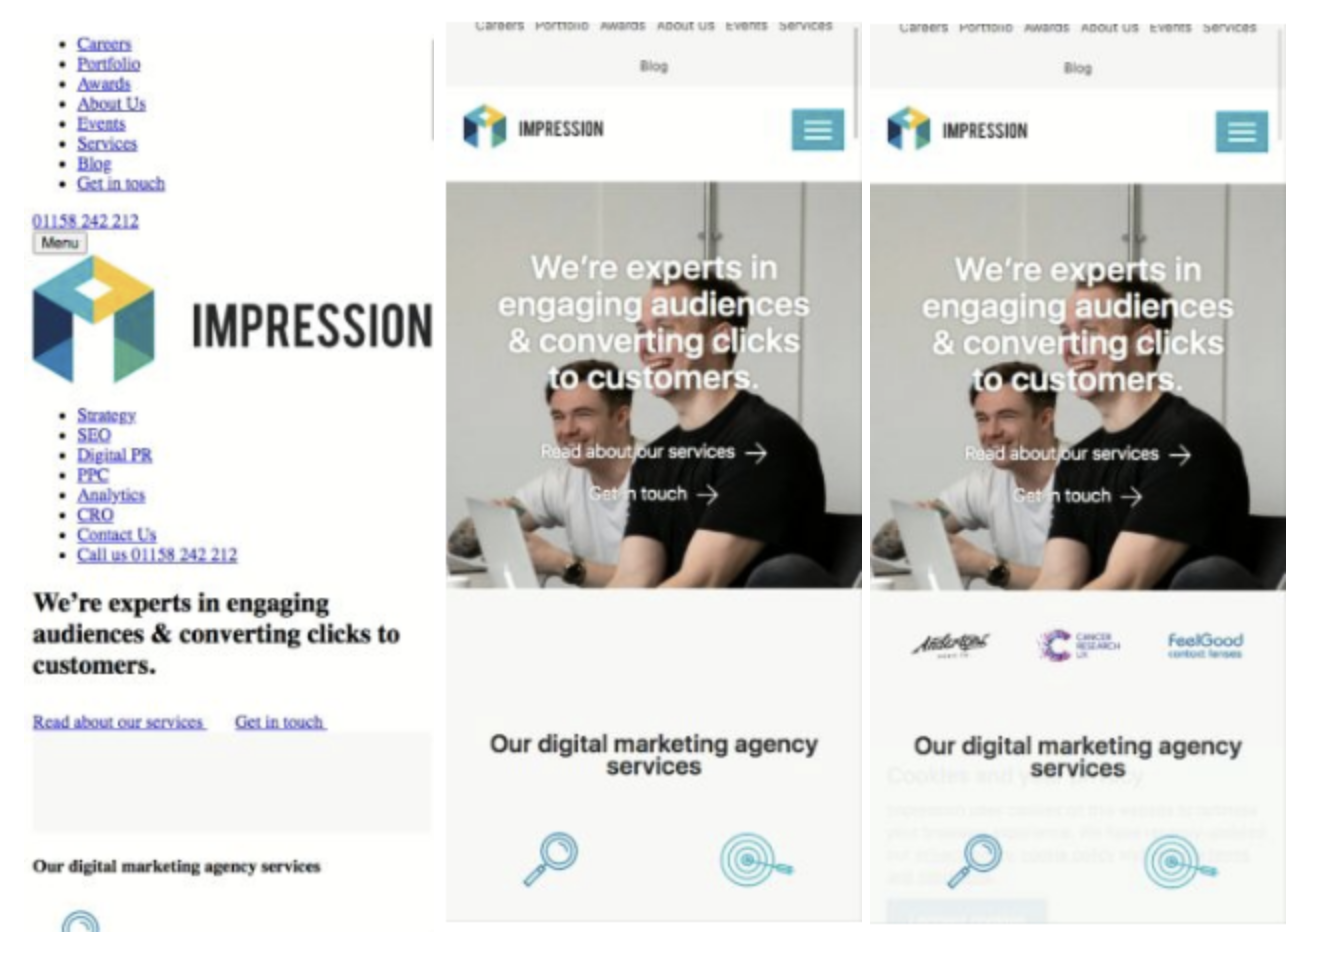 Impression mobile website LCP